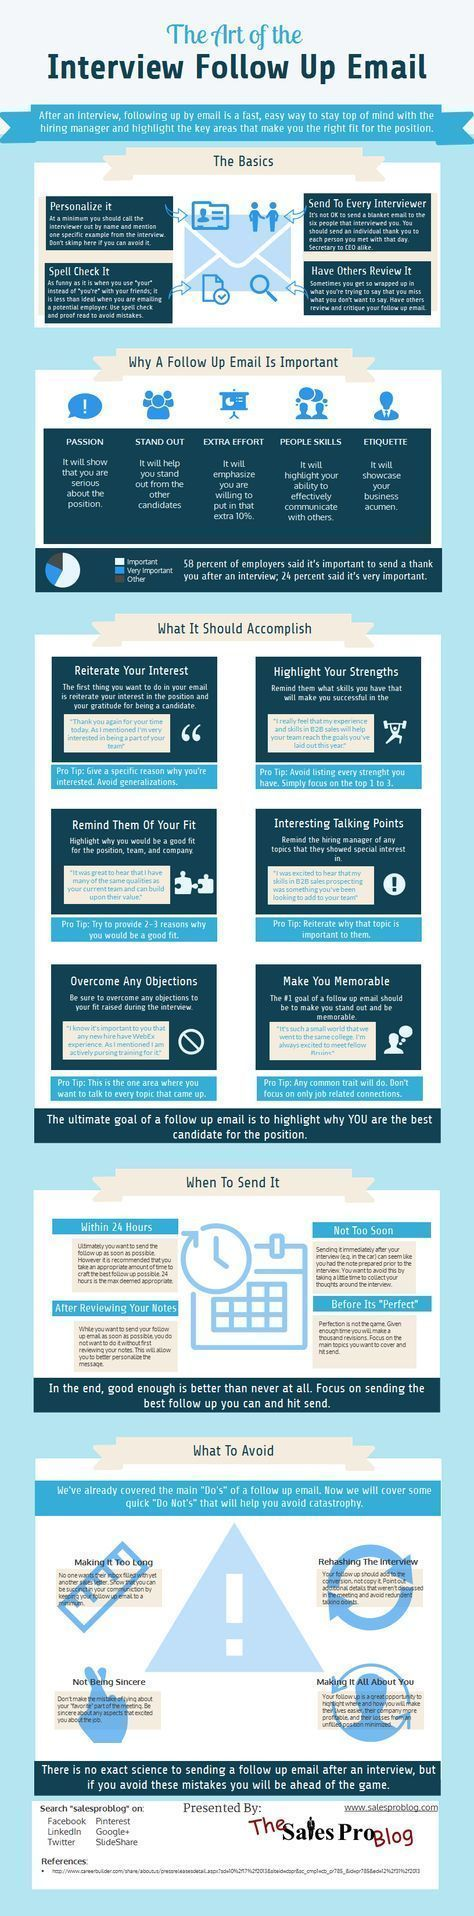 infographic the art of the interview follow up email infographic